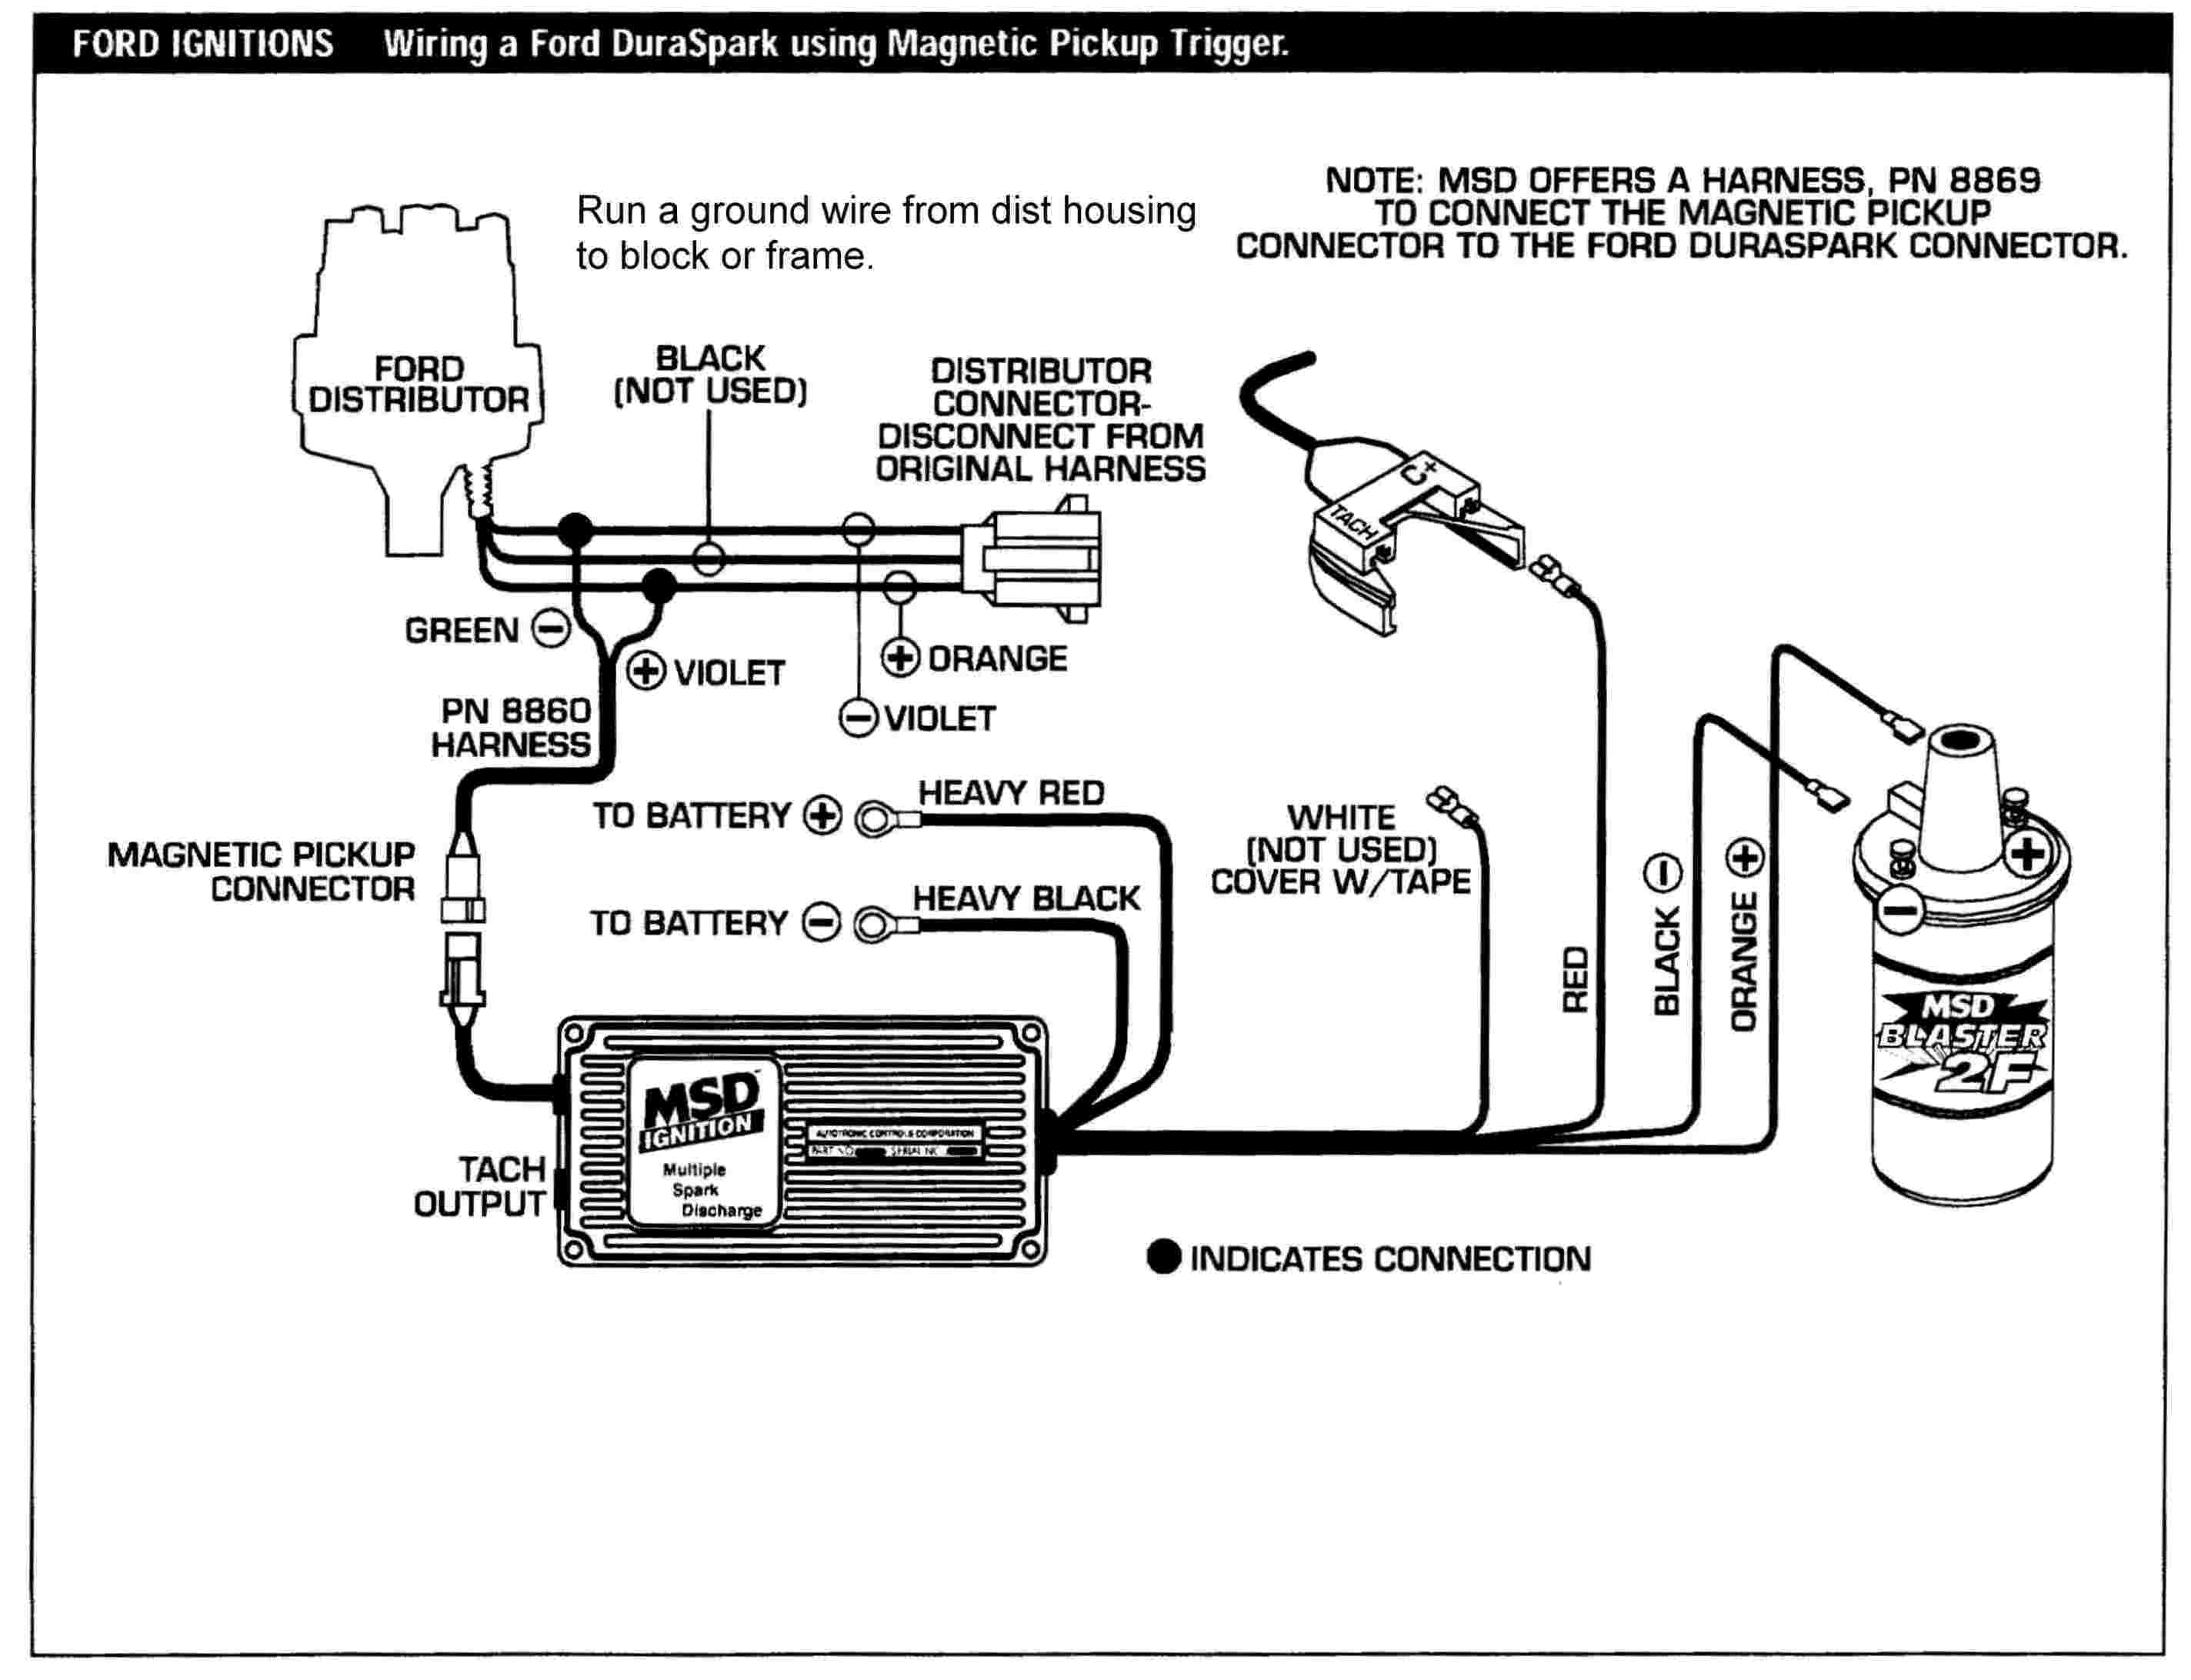 ford msd ignition wiring diagram ford msd ignition wiring diagram 6